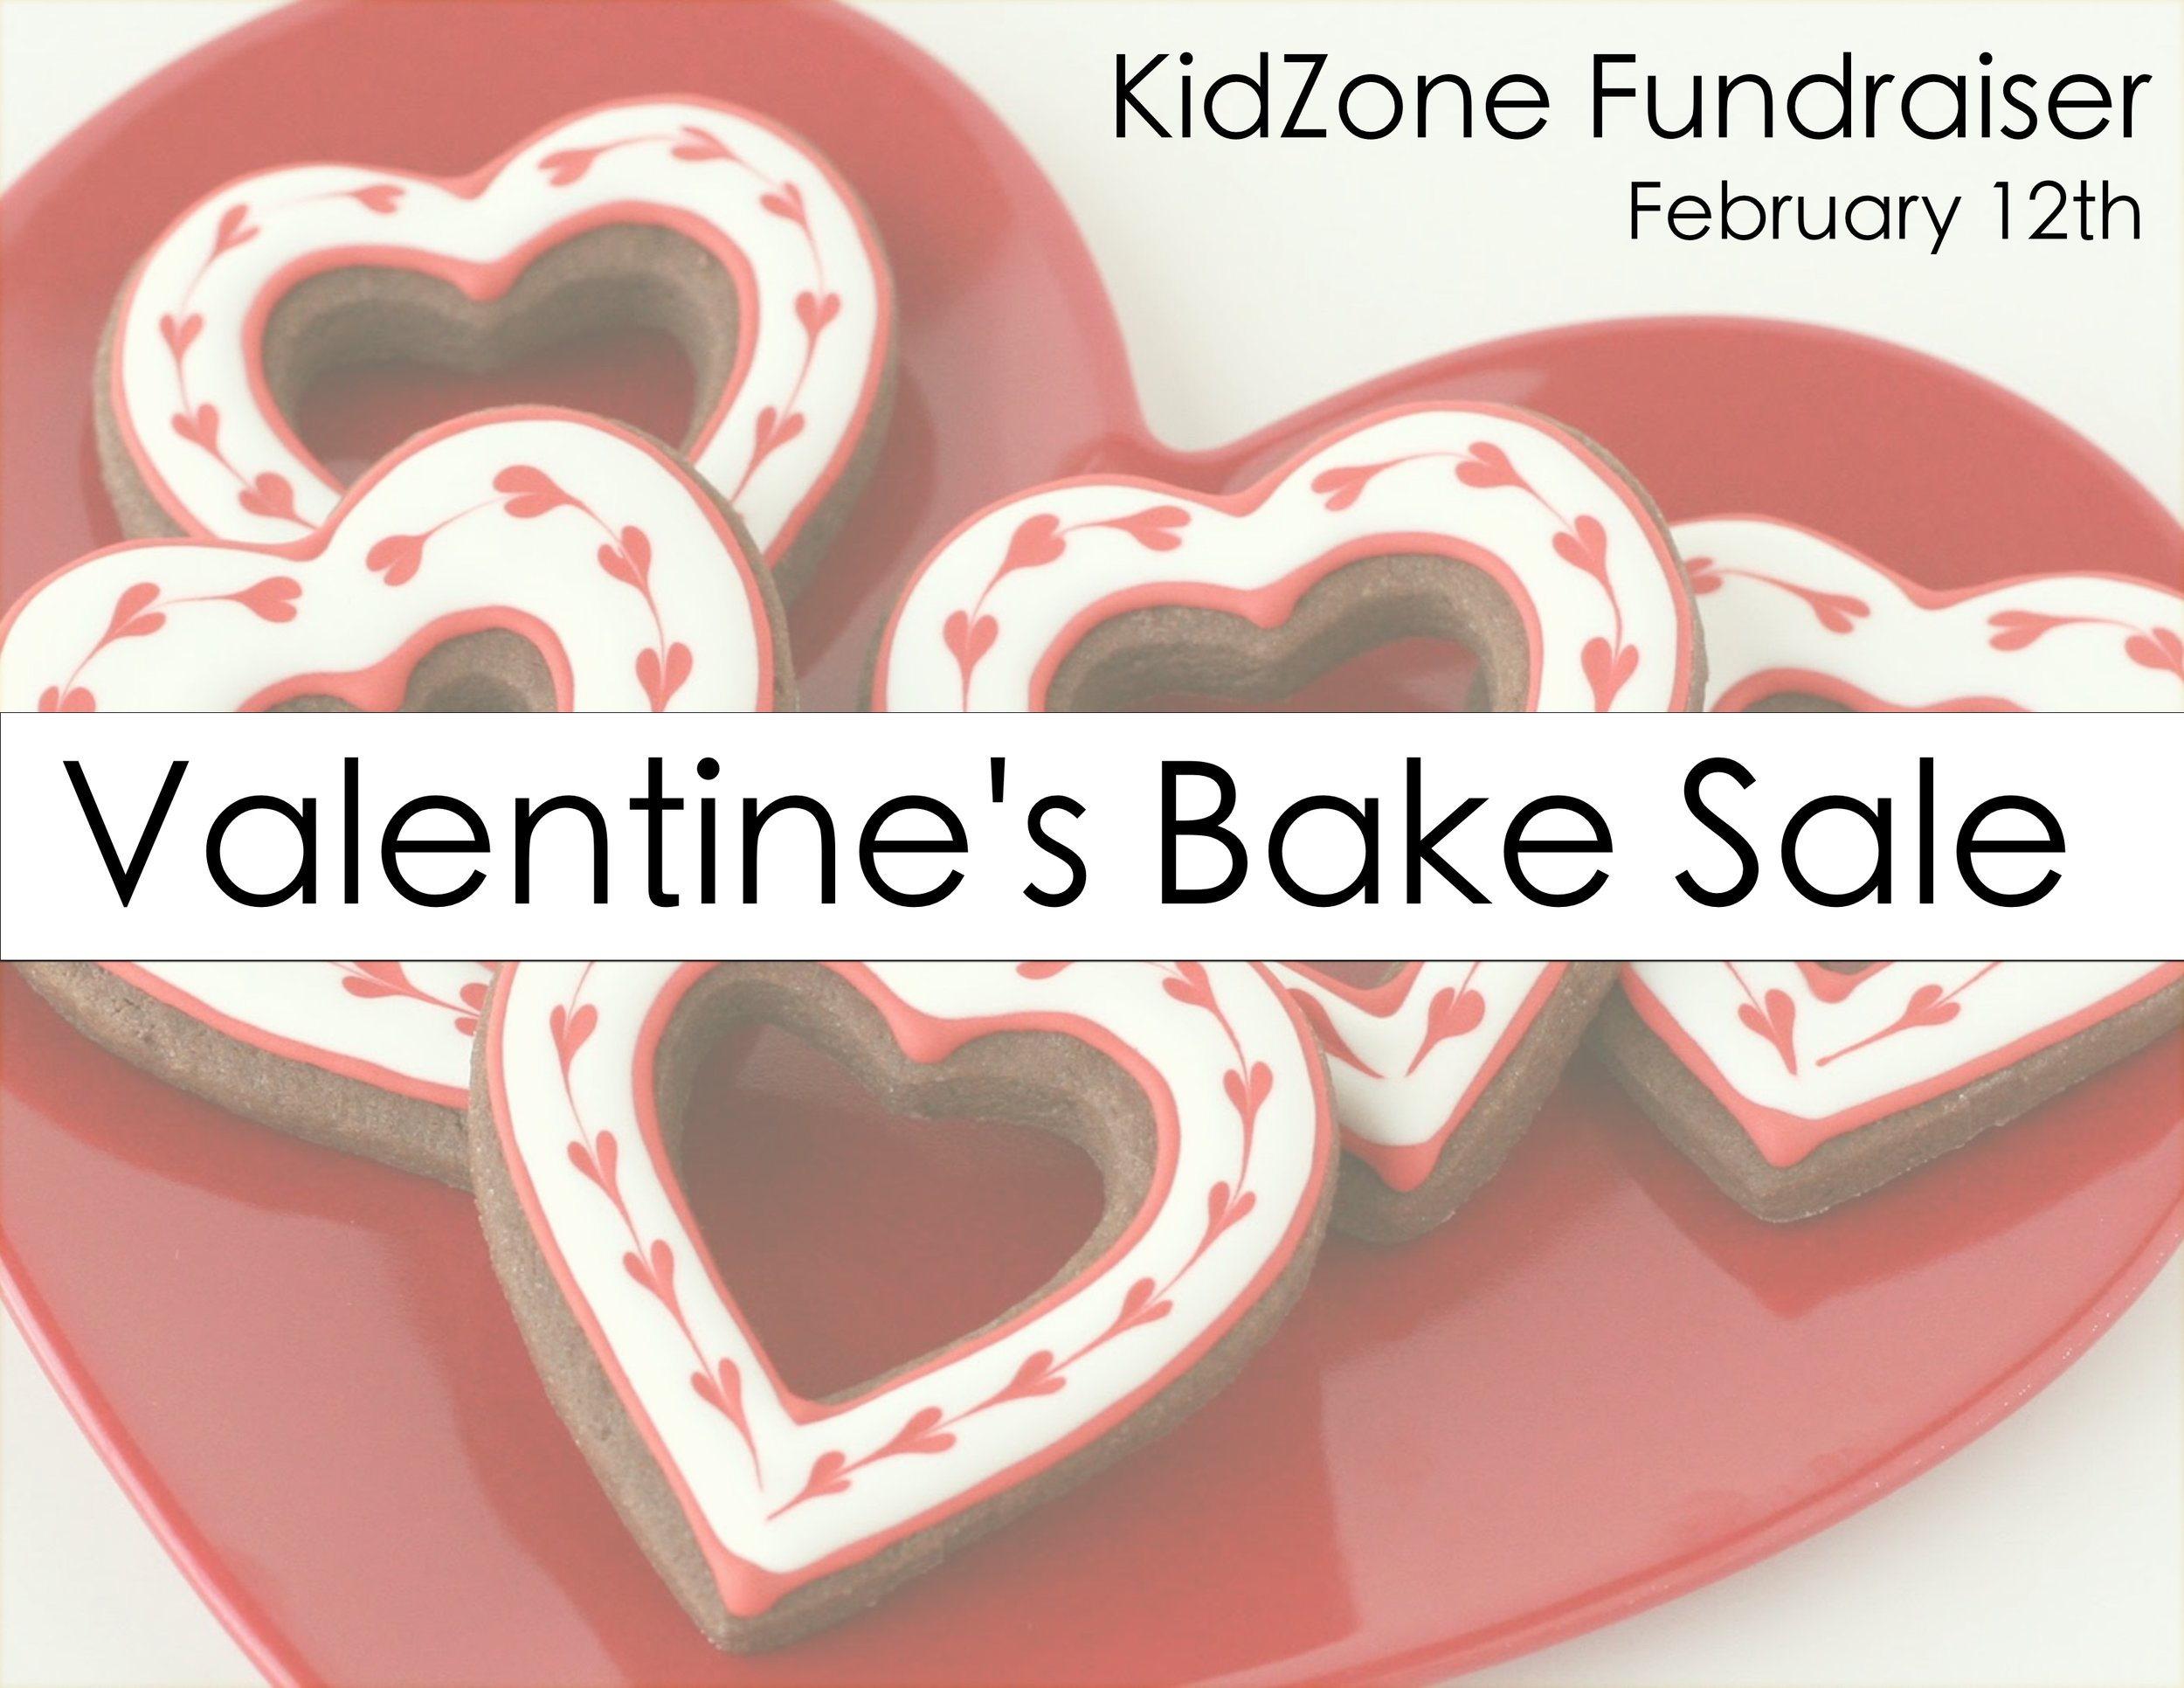 Contribute to the KidZone ministry by buying some delicious goodies for a loved one or for yourself :)!